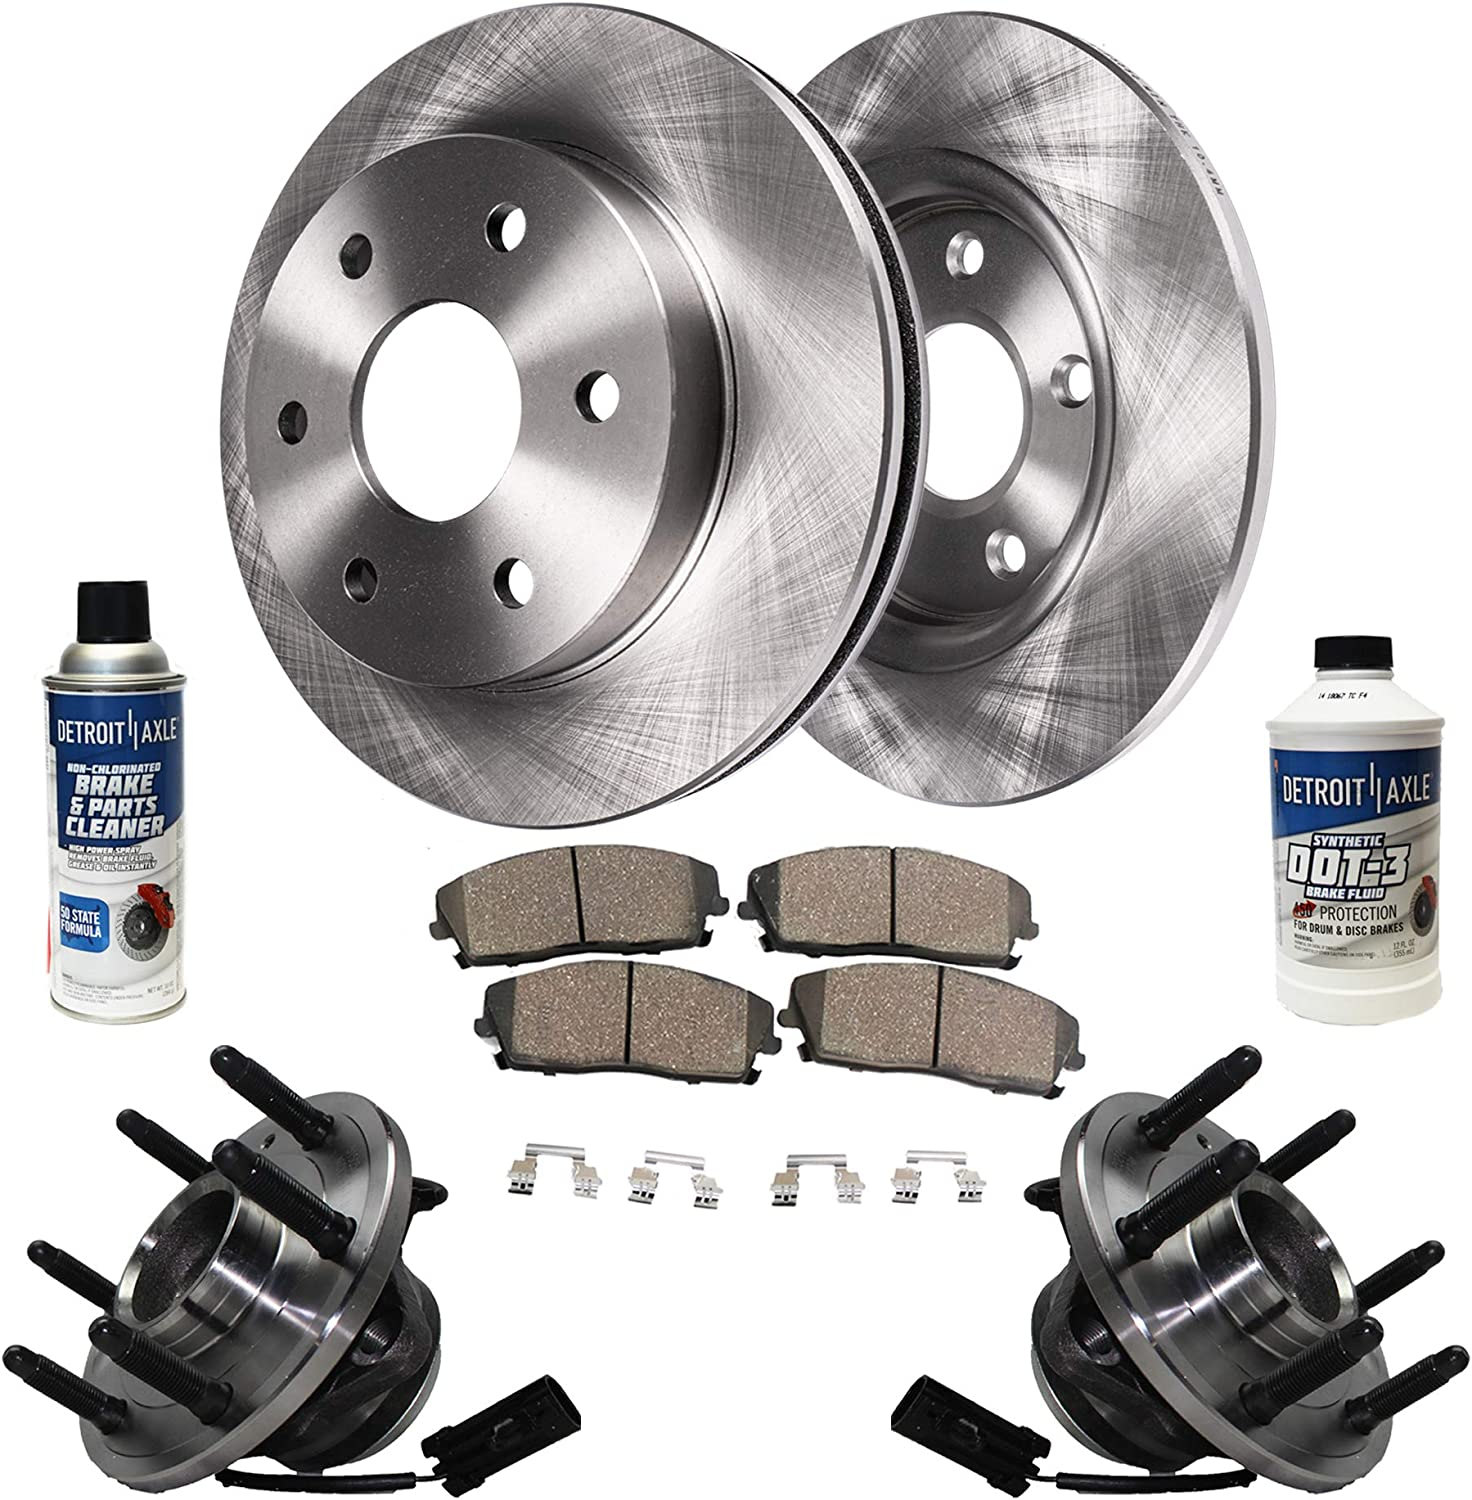 1999 2000 GMC Sierra 2500 See Desc. OE Replacement Rotors w//Metallic Pads R